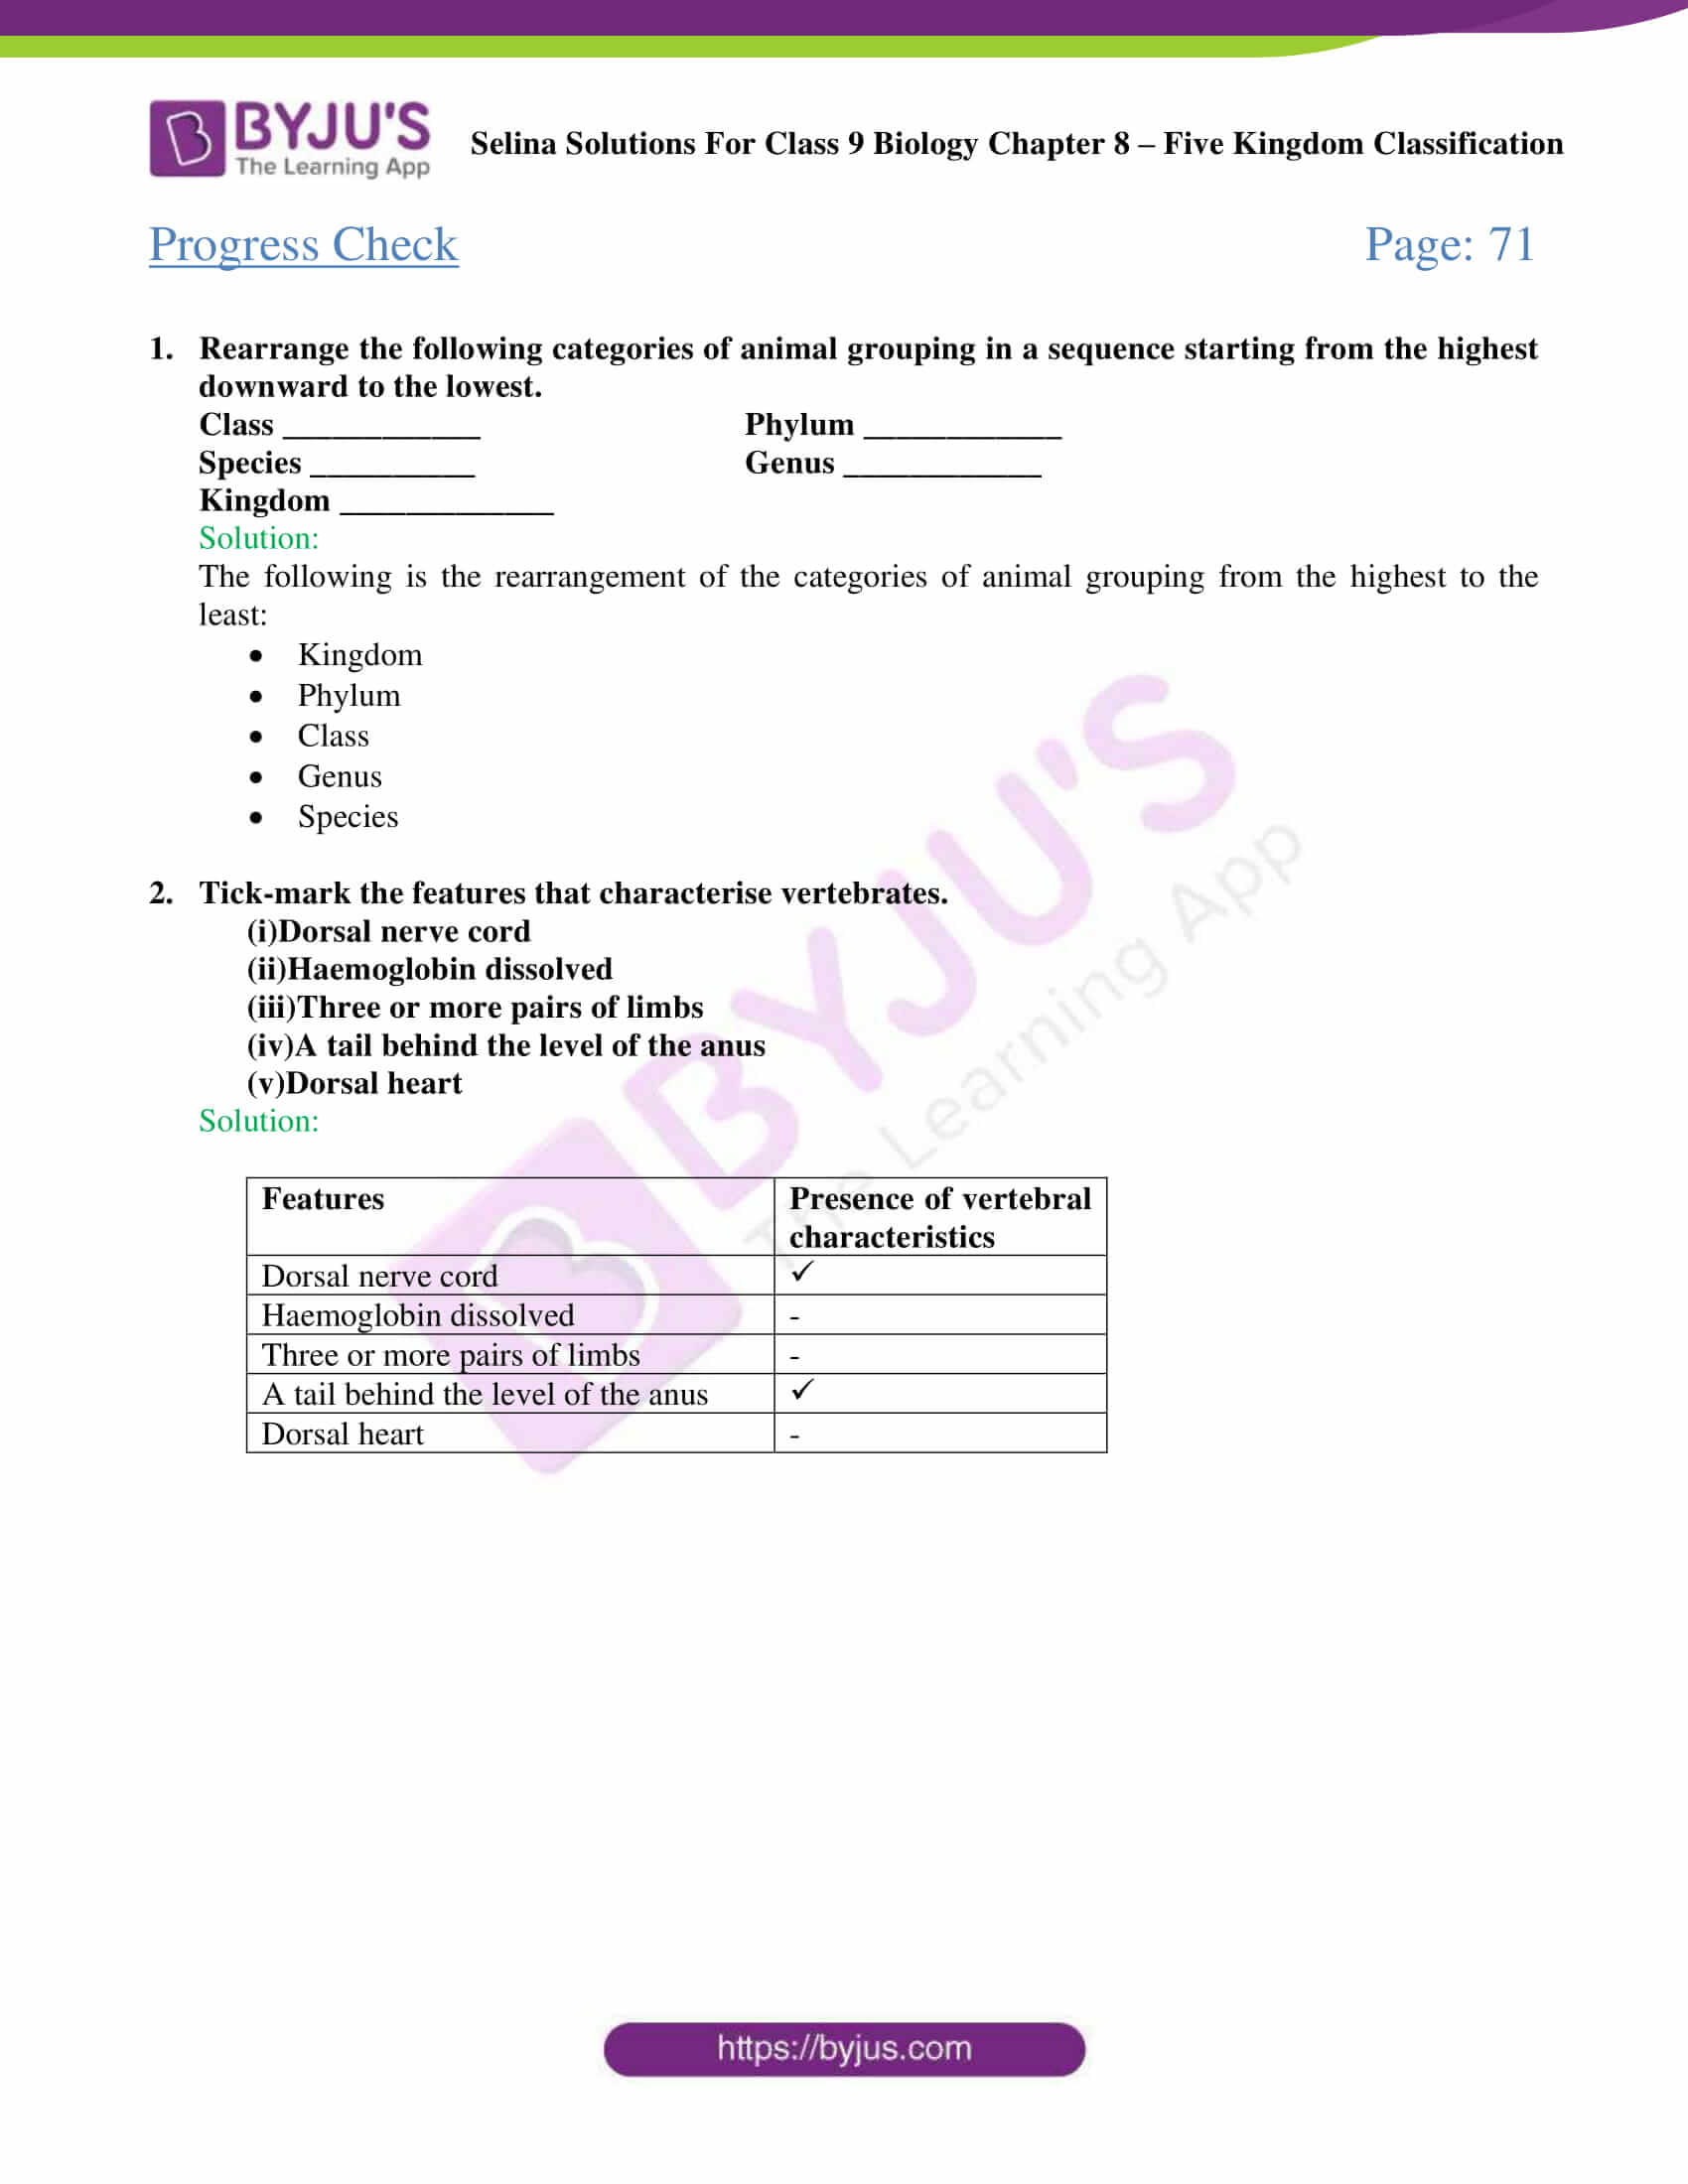 Selina Solutions For Class 9 Biology Chapter 8 Five Kingdom Classification part 01